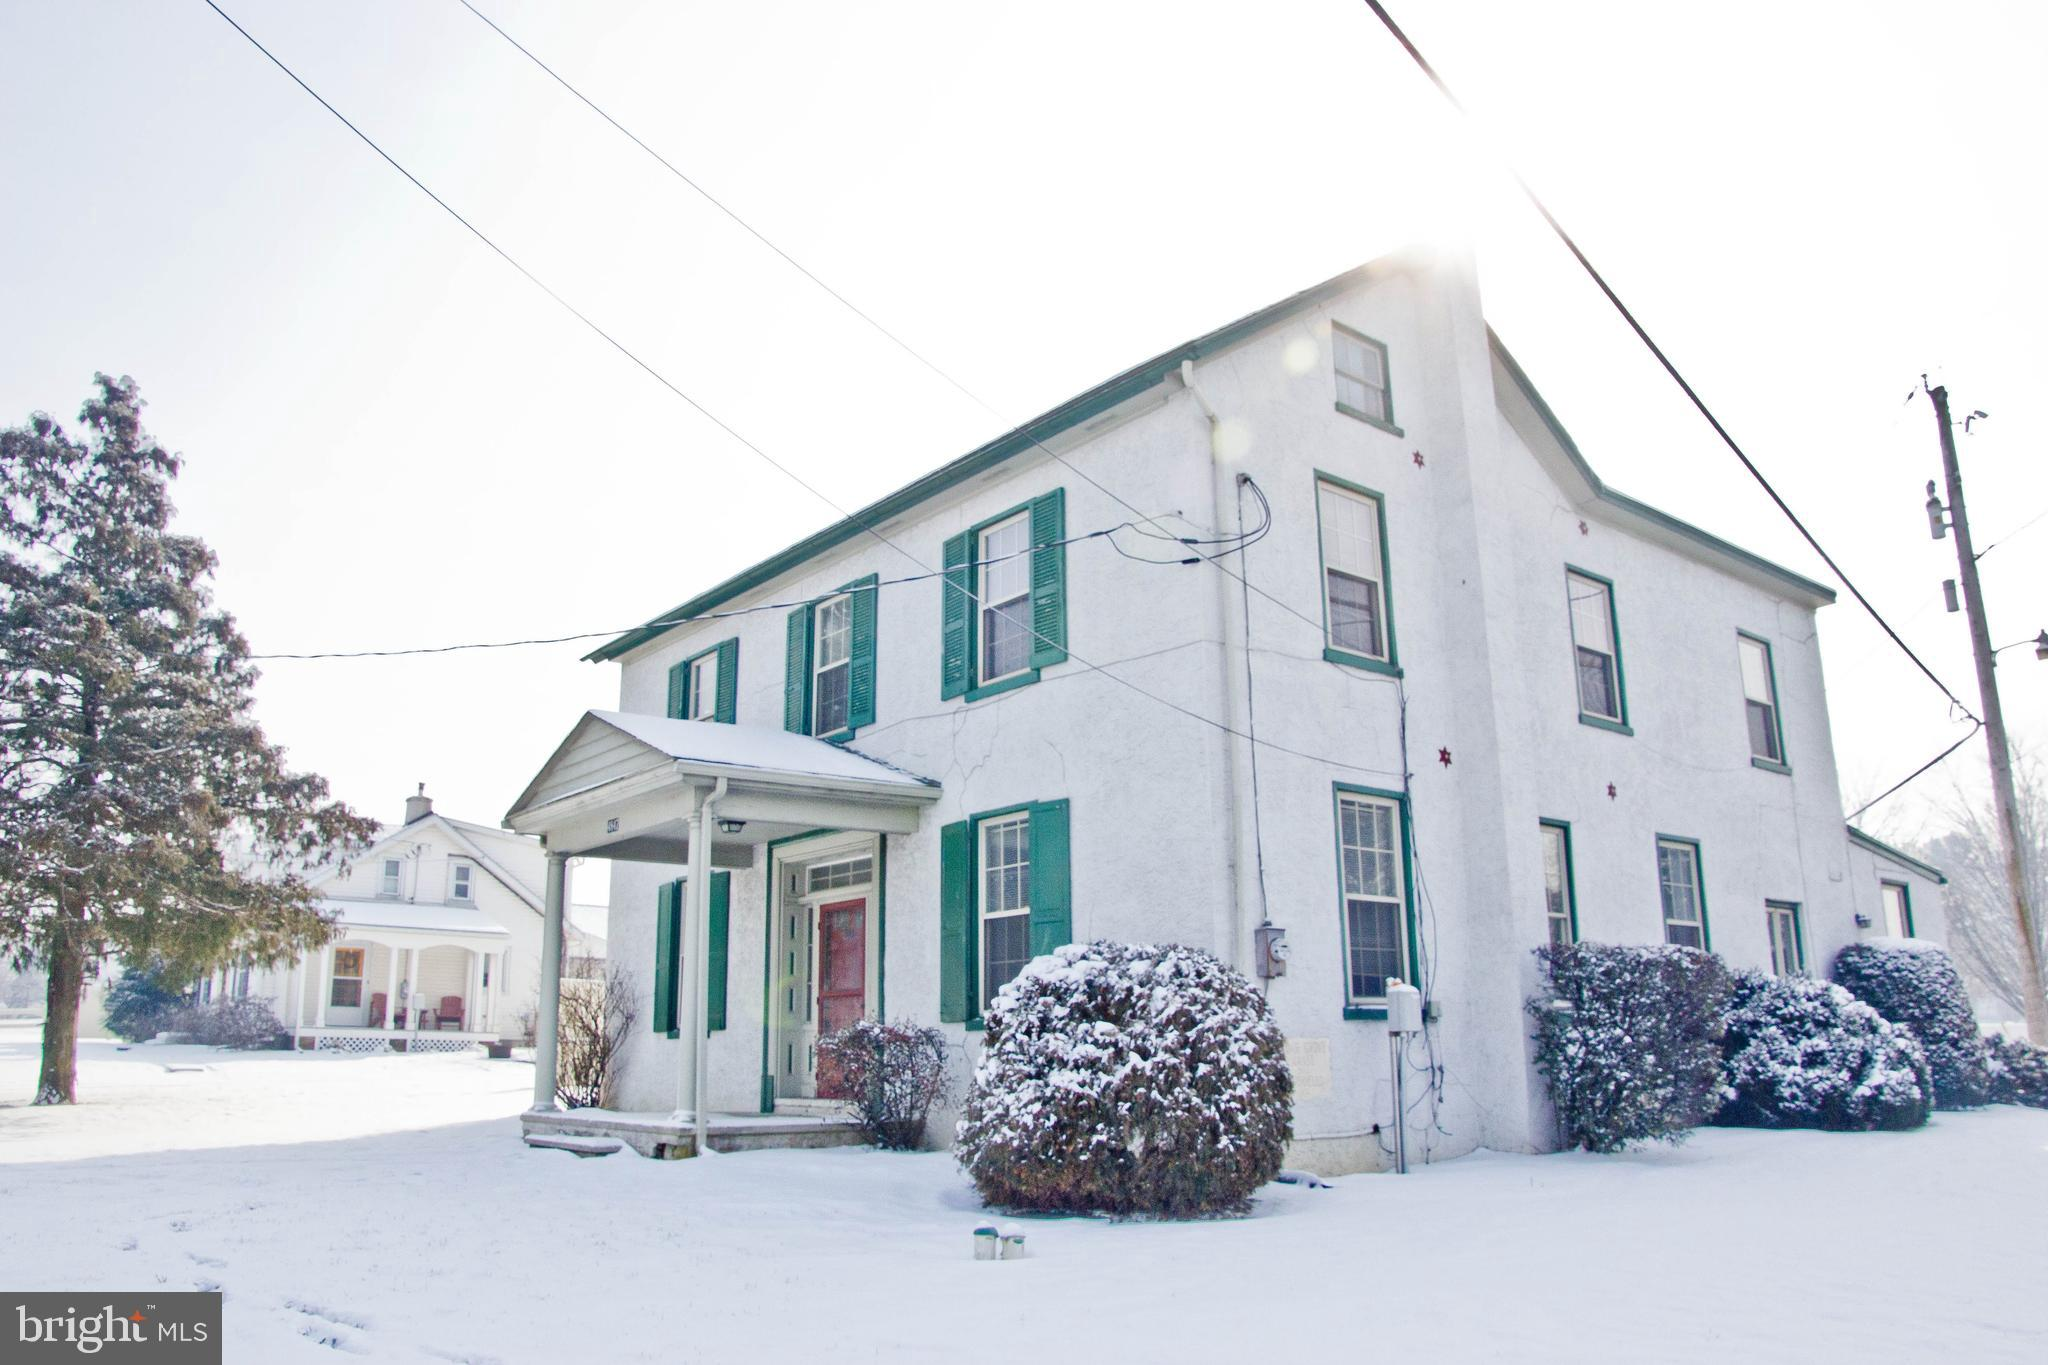 4847 28TH DIVISION HIGHWAY, EAST EARL, PA 17519